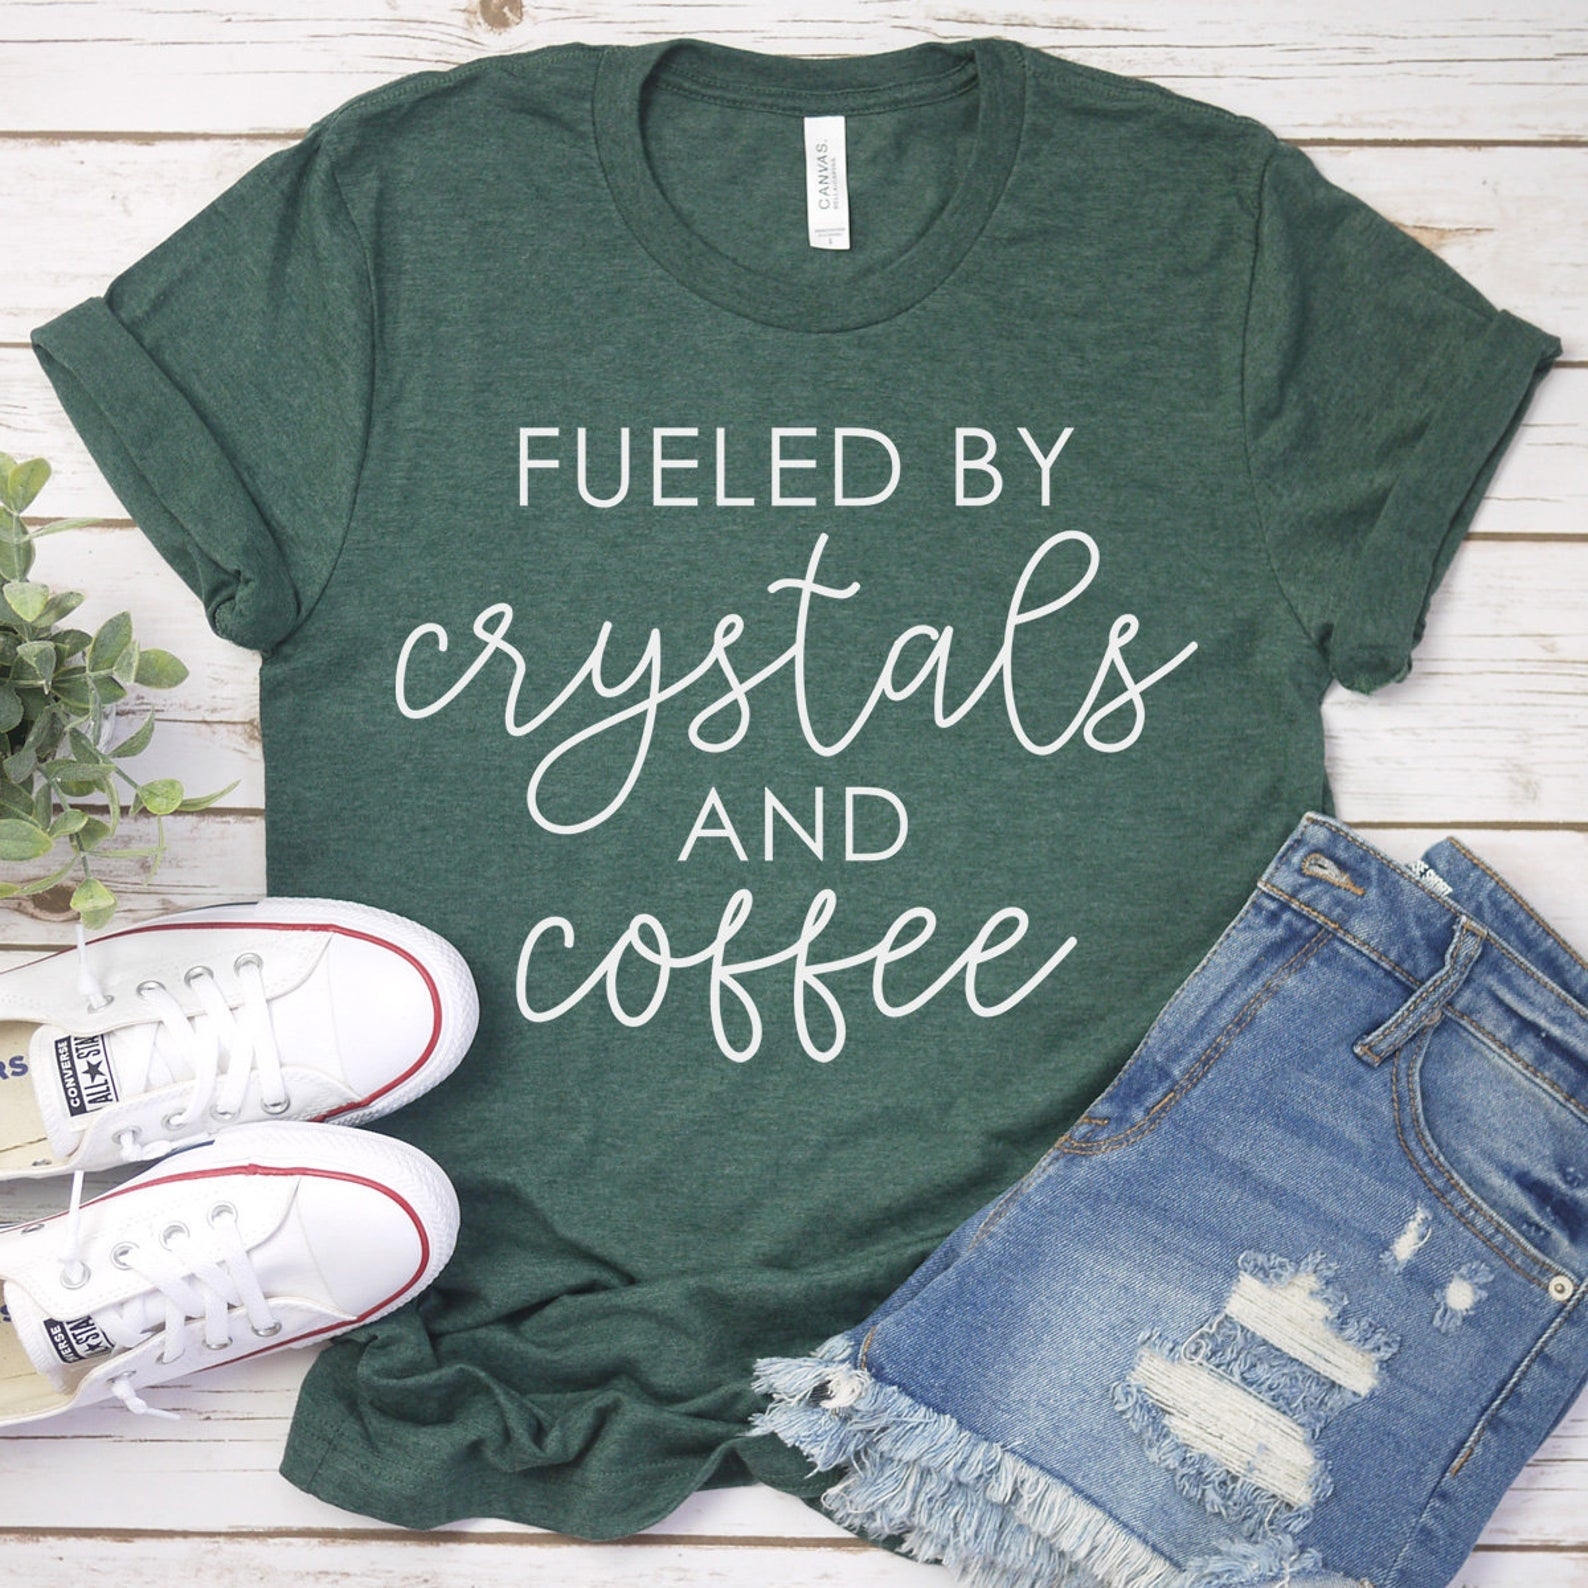 Crystals & Coffee T-shirt